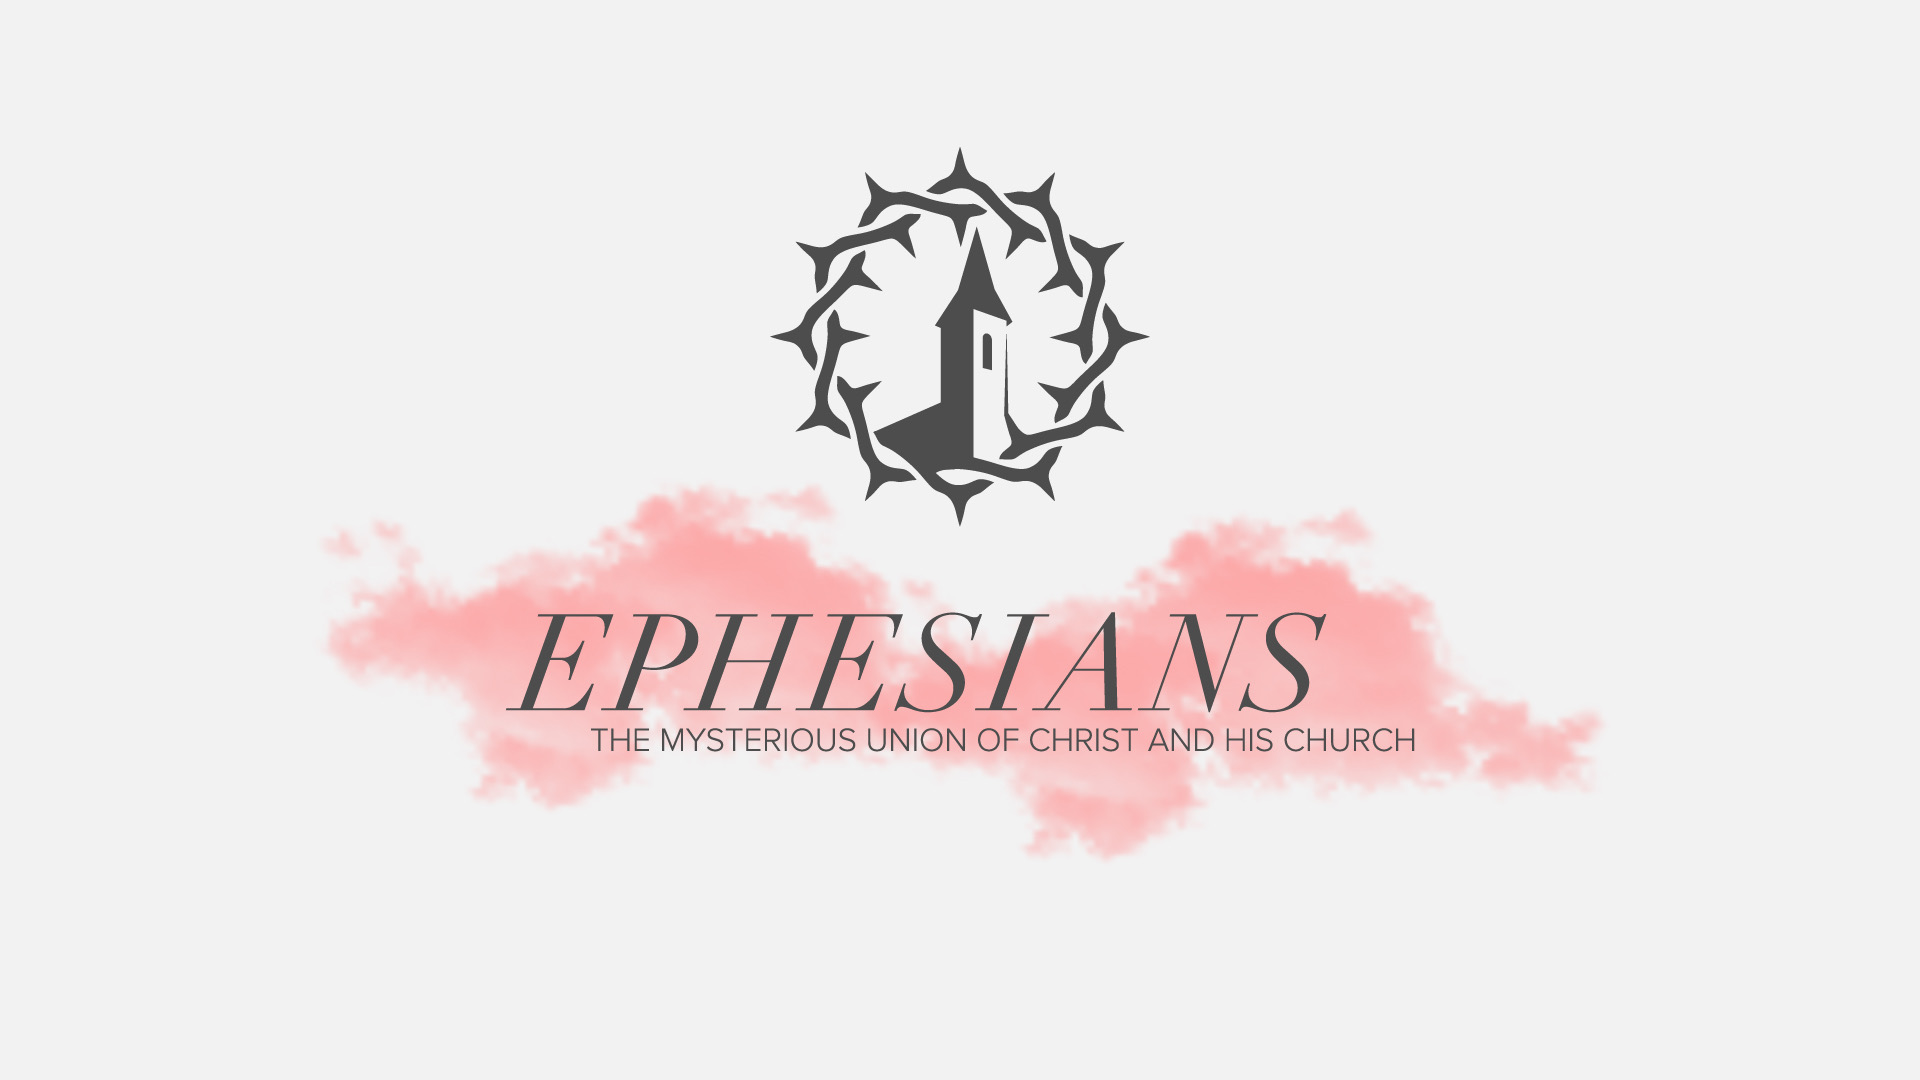 Ephesians - The Mysterious Union of Christ and His Church